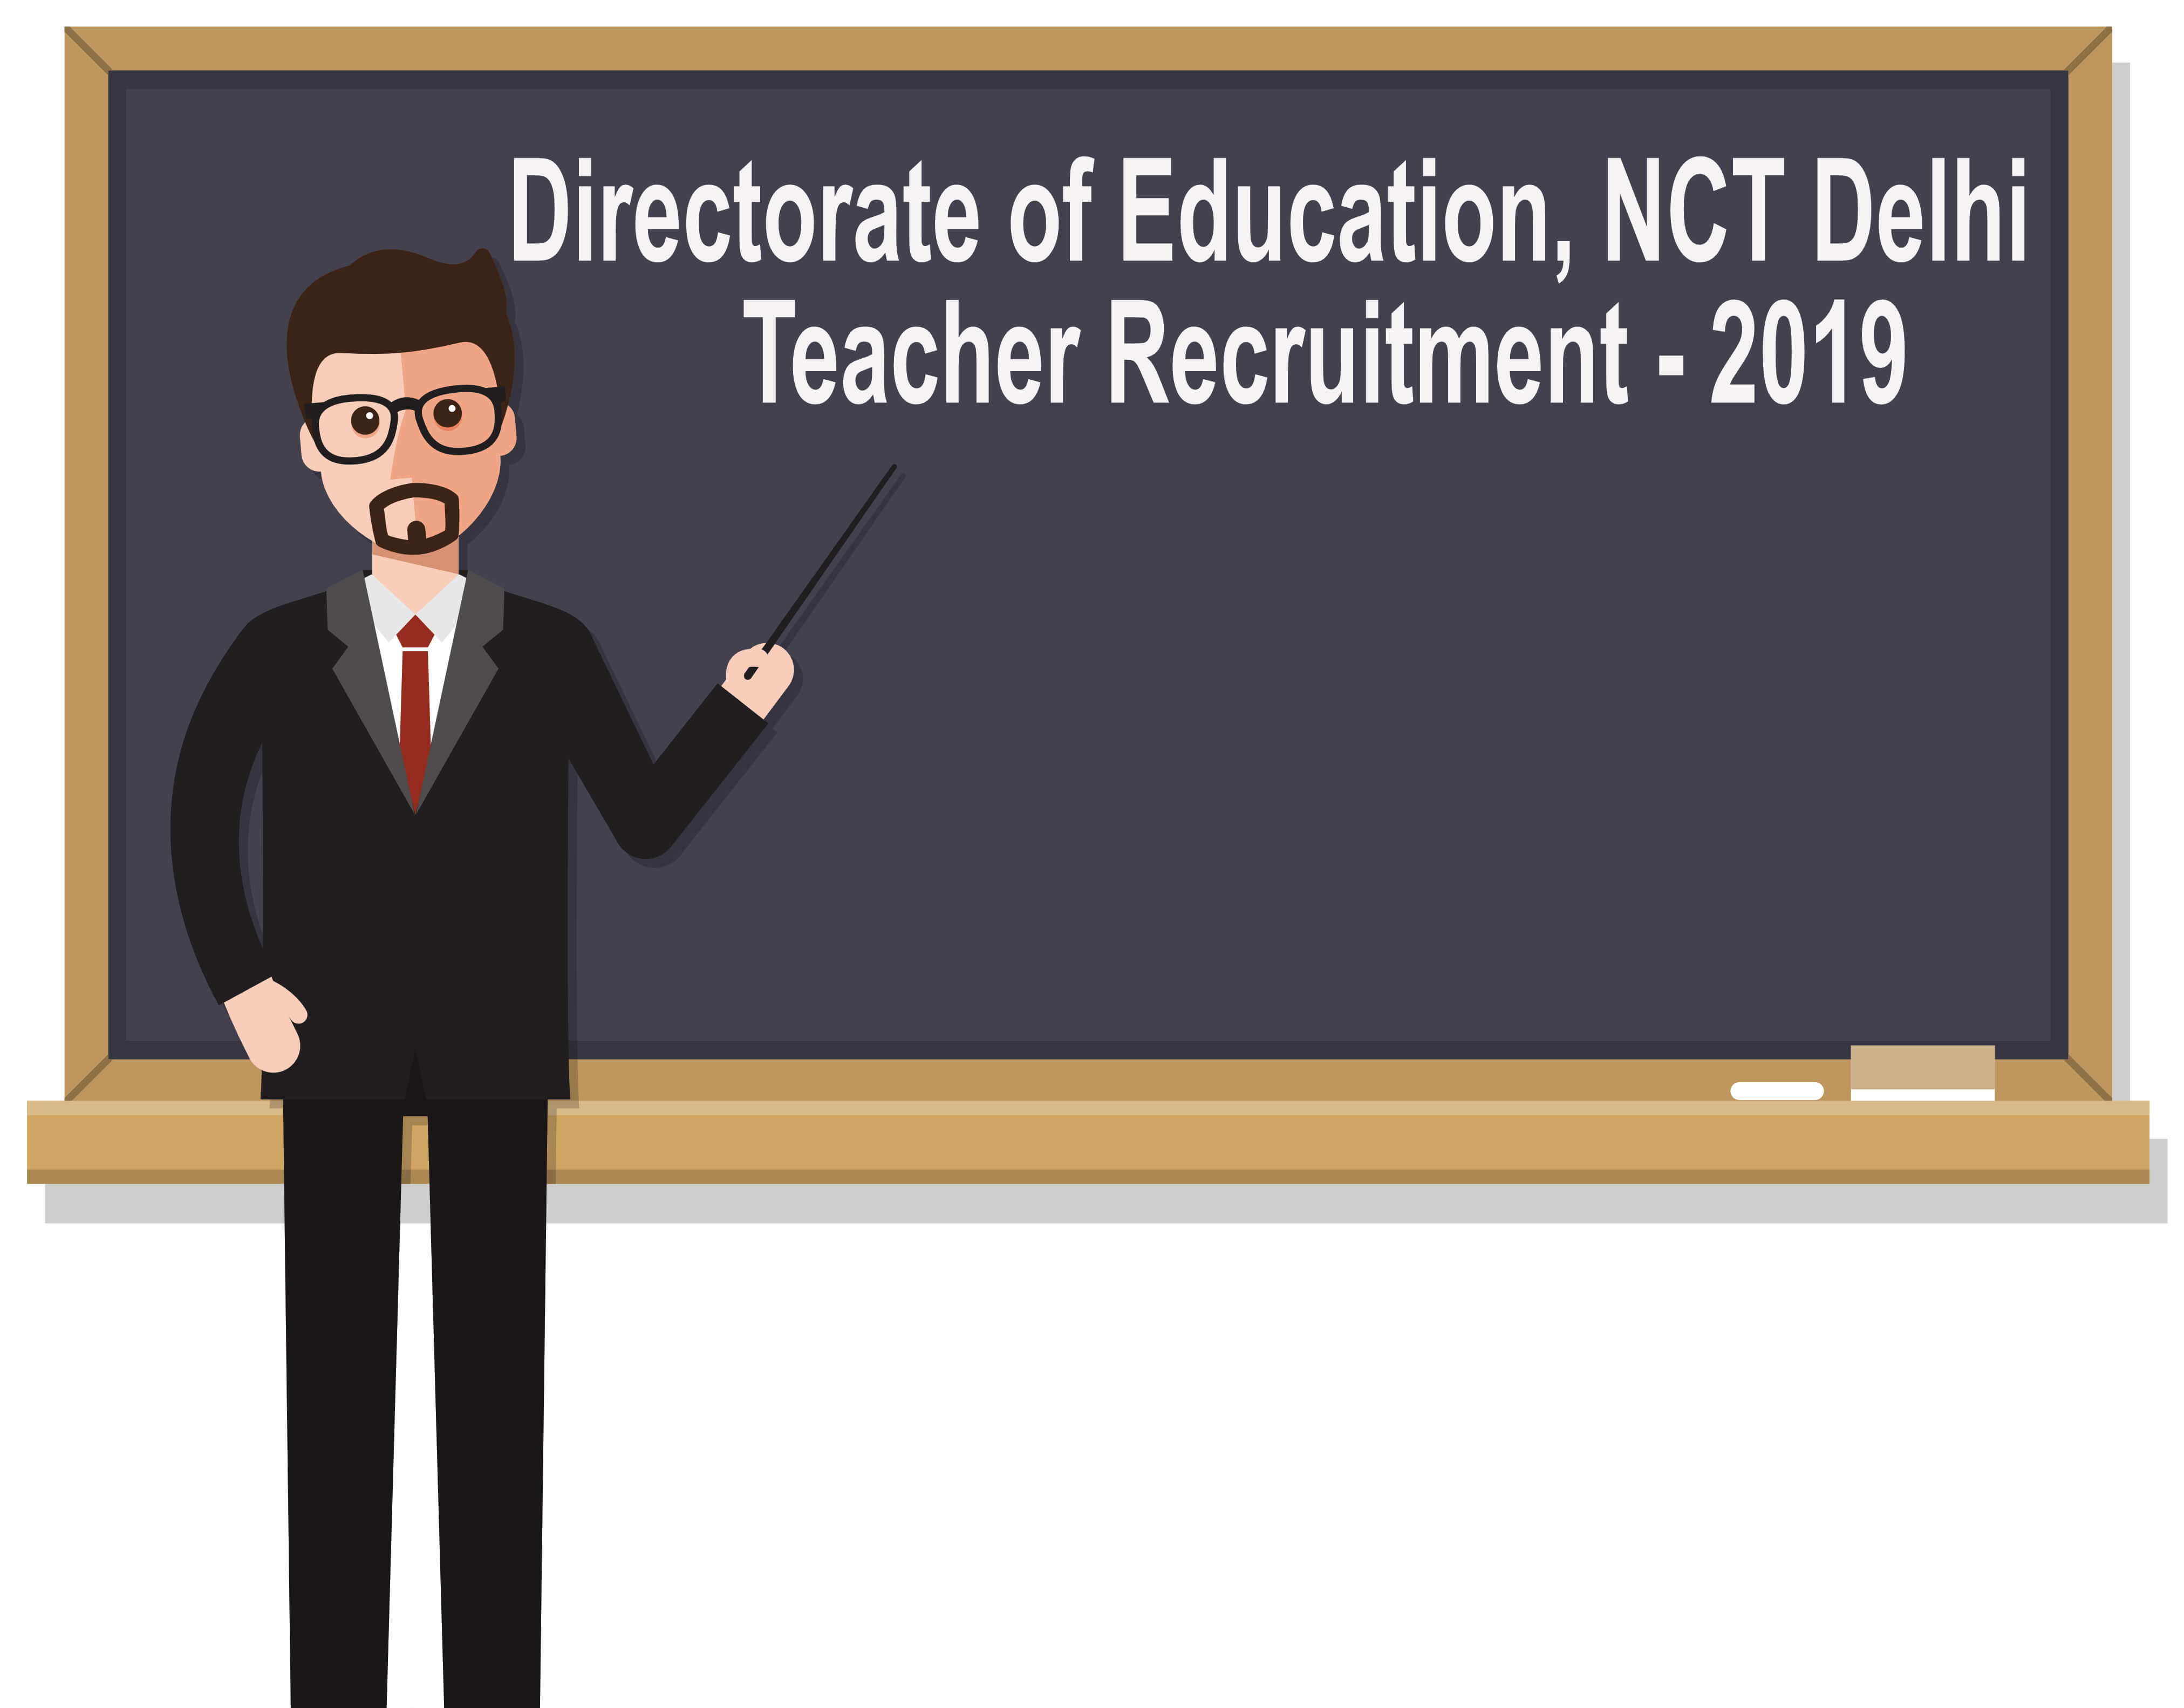 Directorate of Education, NCT Delhi Hiring 521 Teachers On Contract Basis